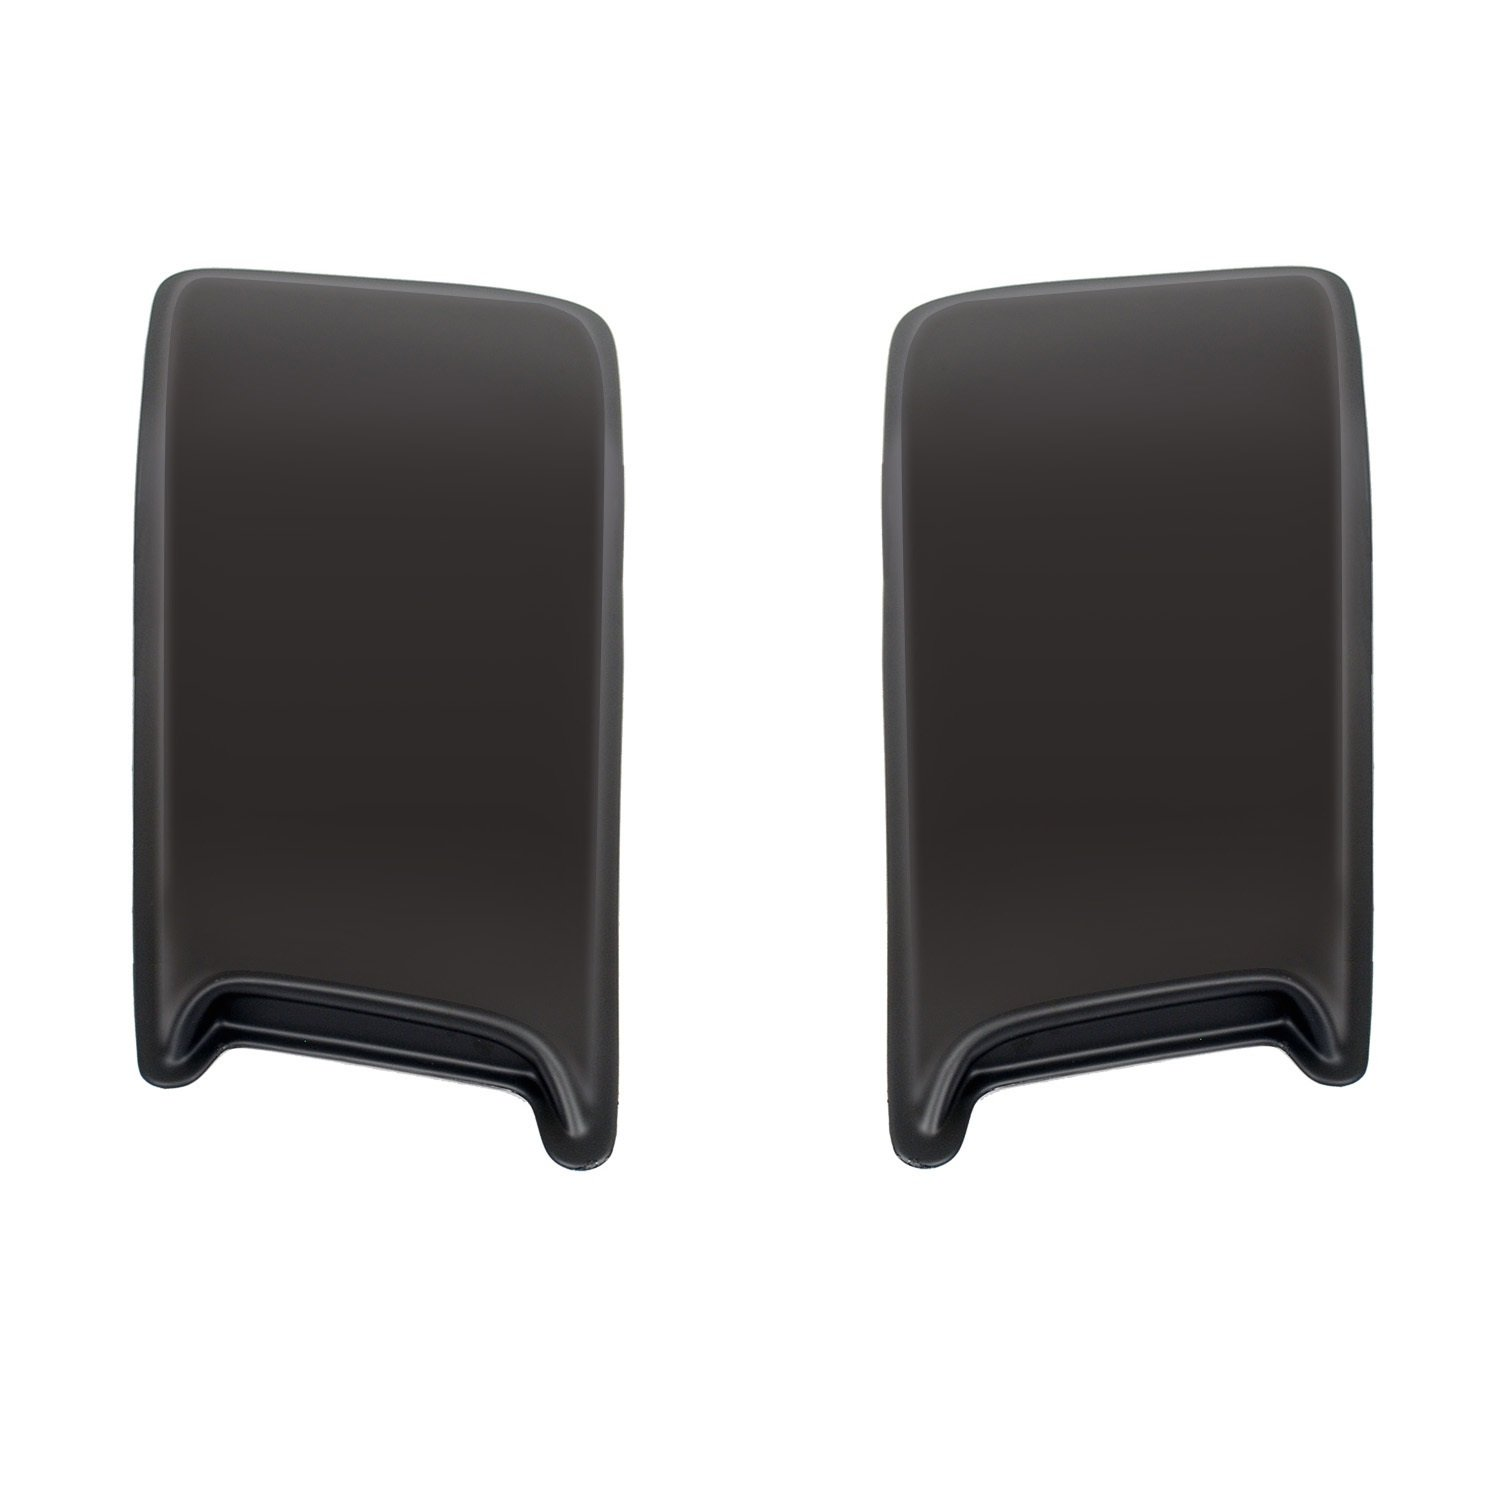 Wade 72-13001 30' Paintable Hood Scoops With Smooth Finish - Pack of 2 Westin 72-3001